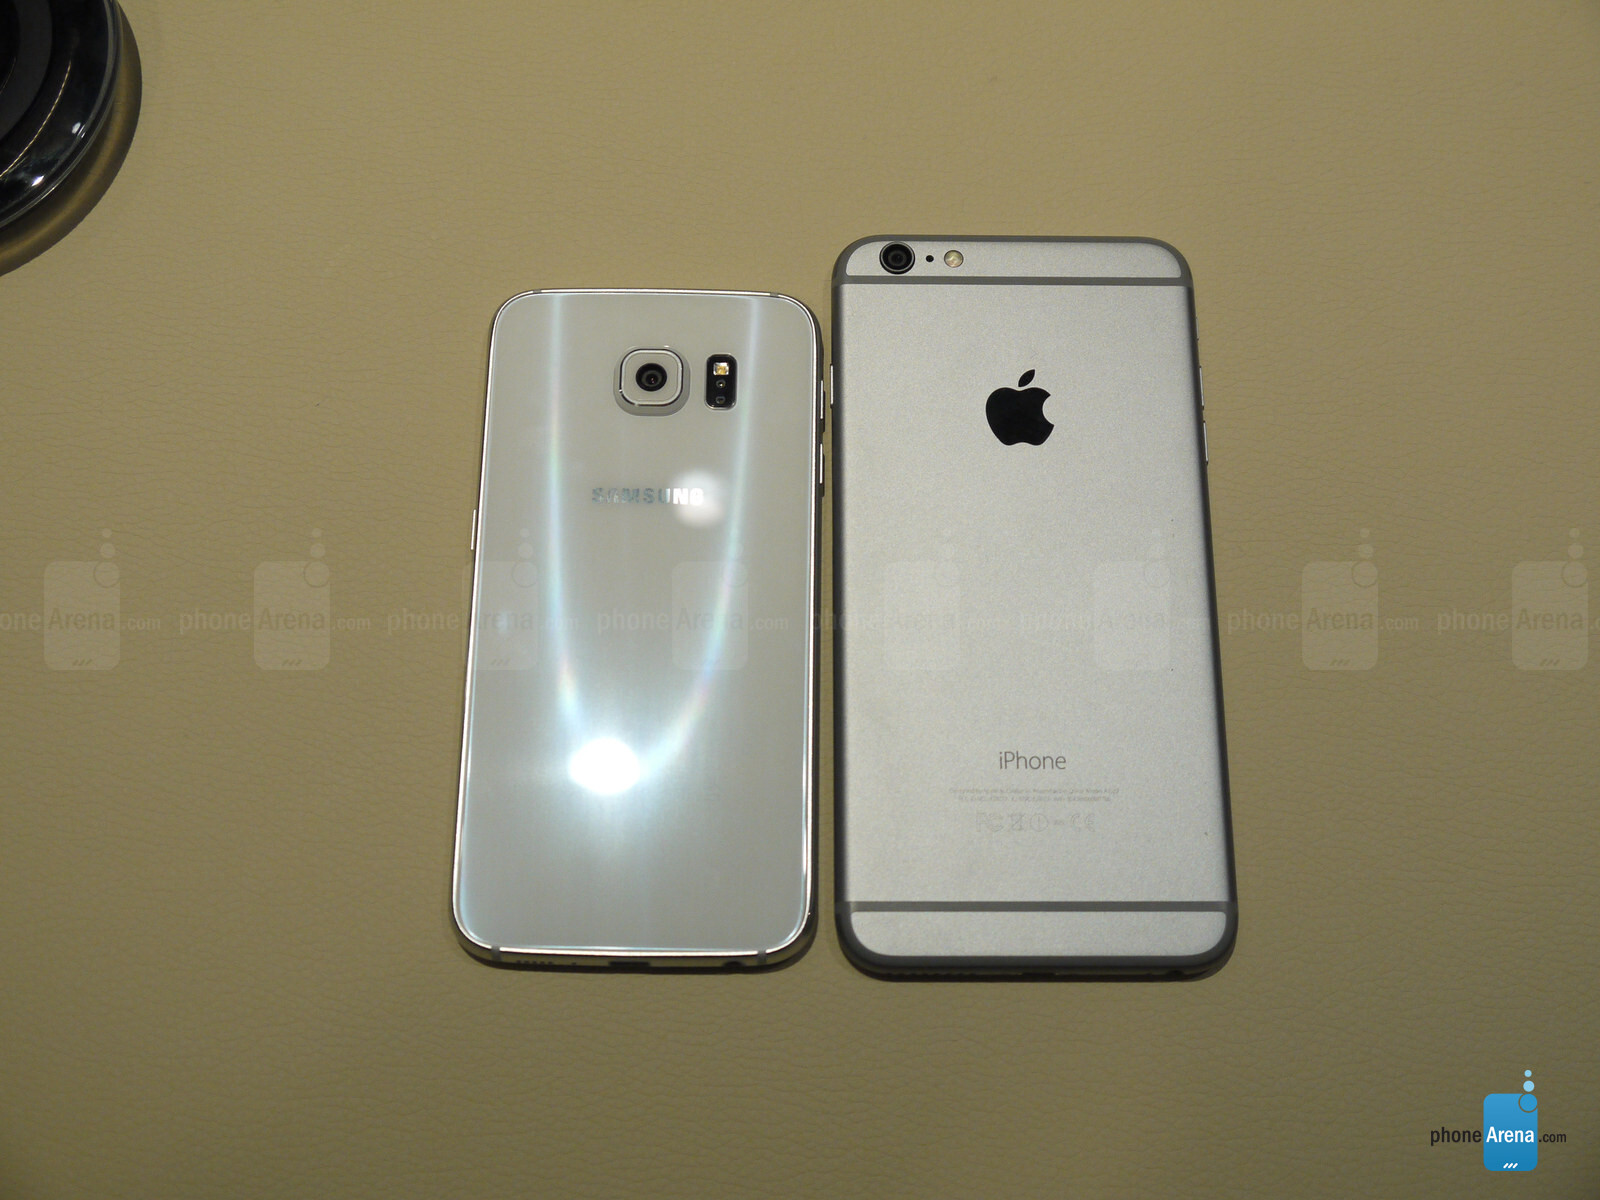 Apple iPhone 6 Plus: first look [Web]